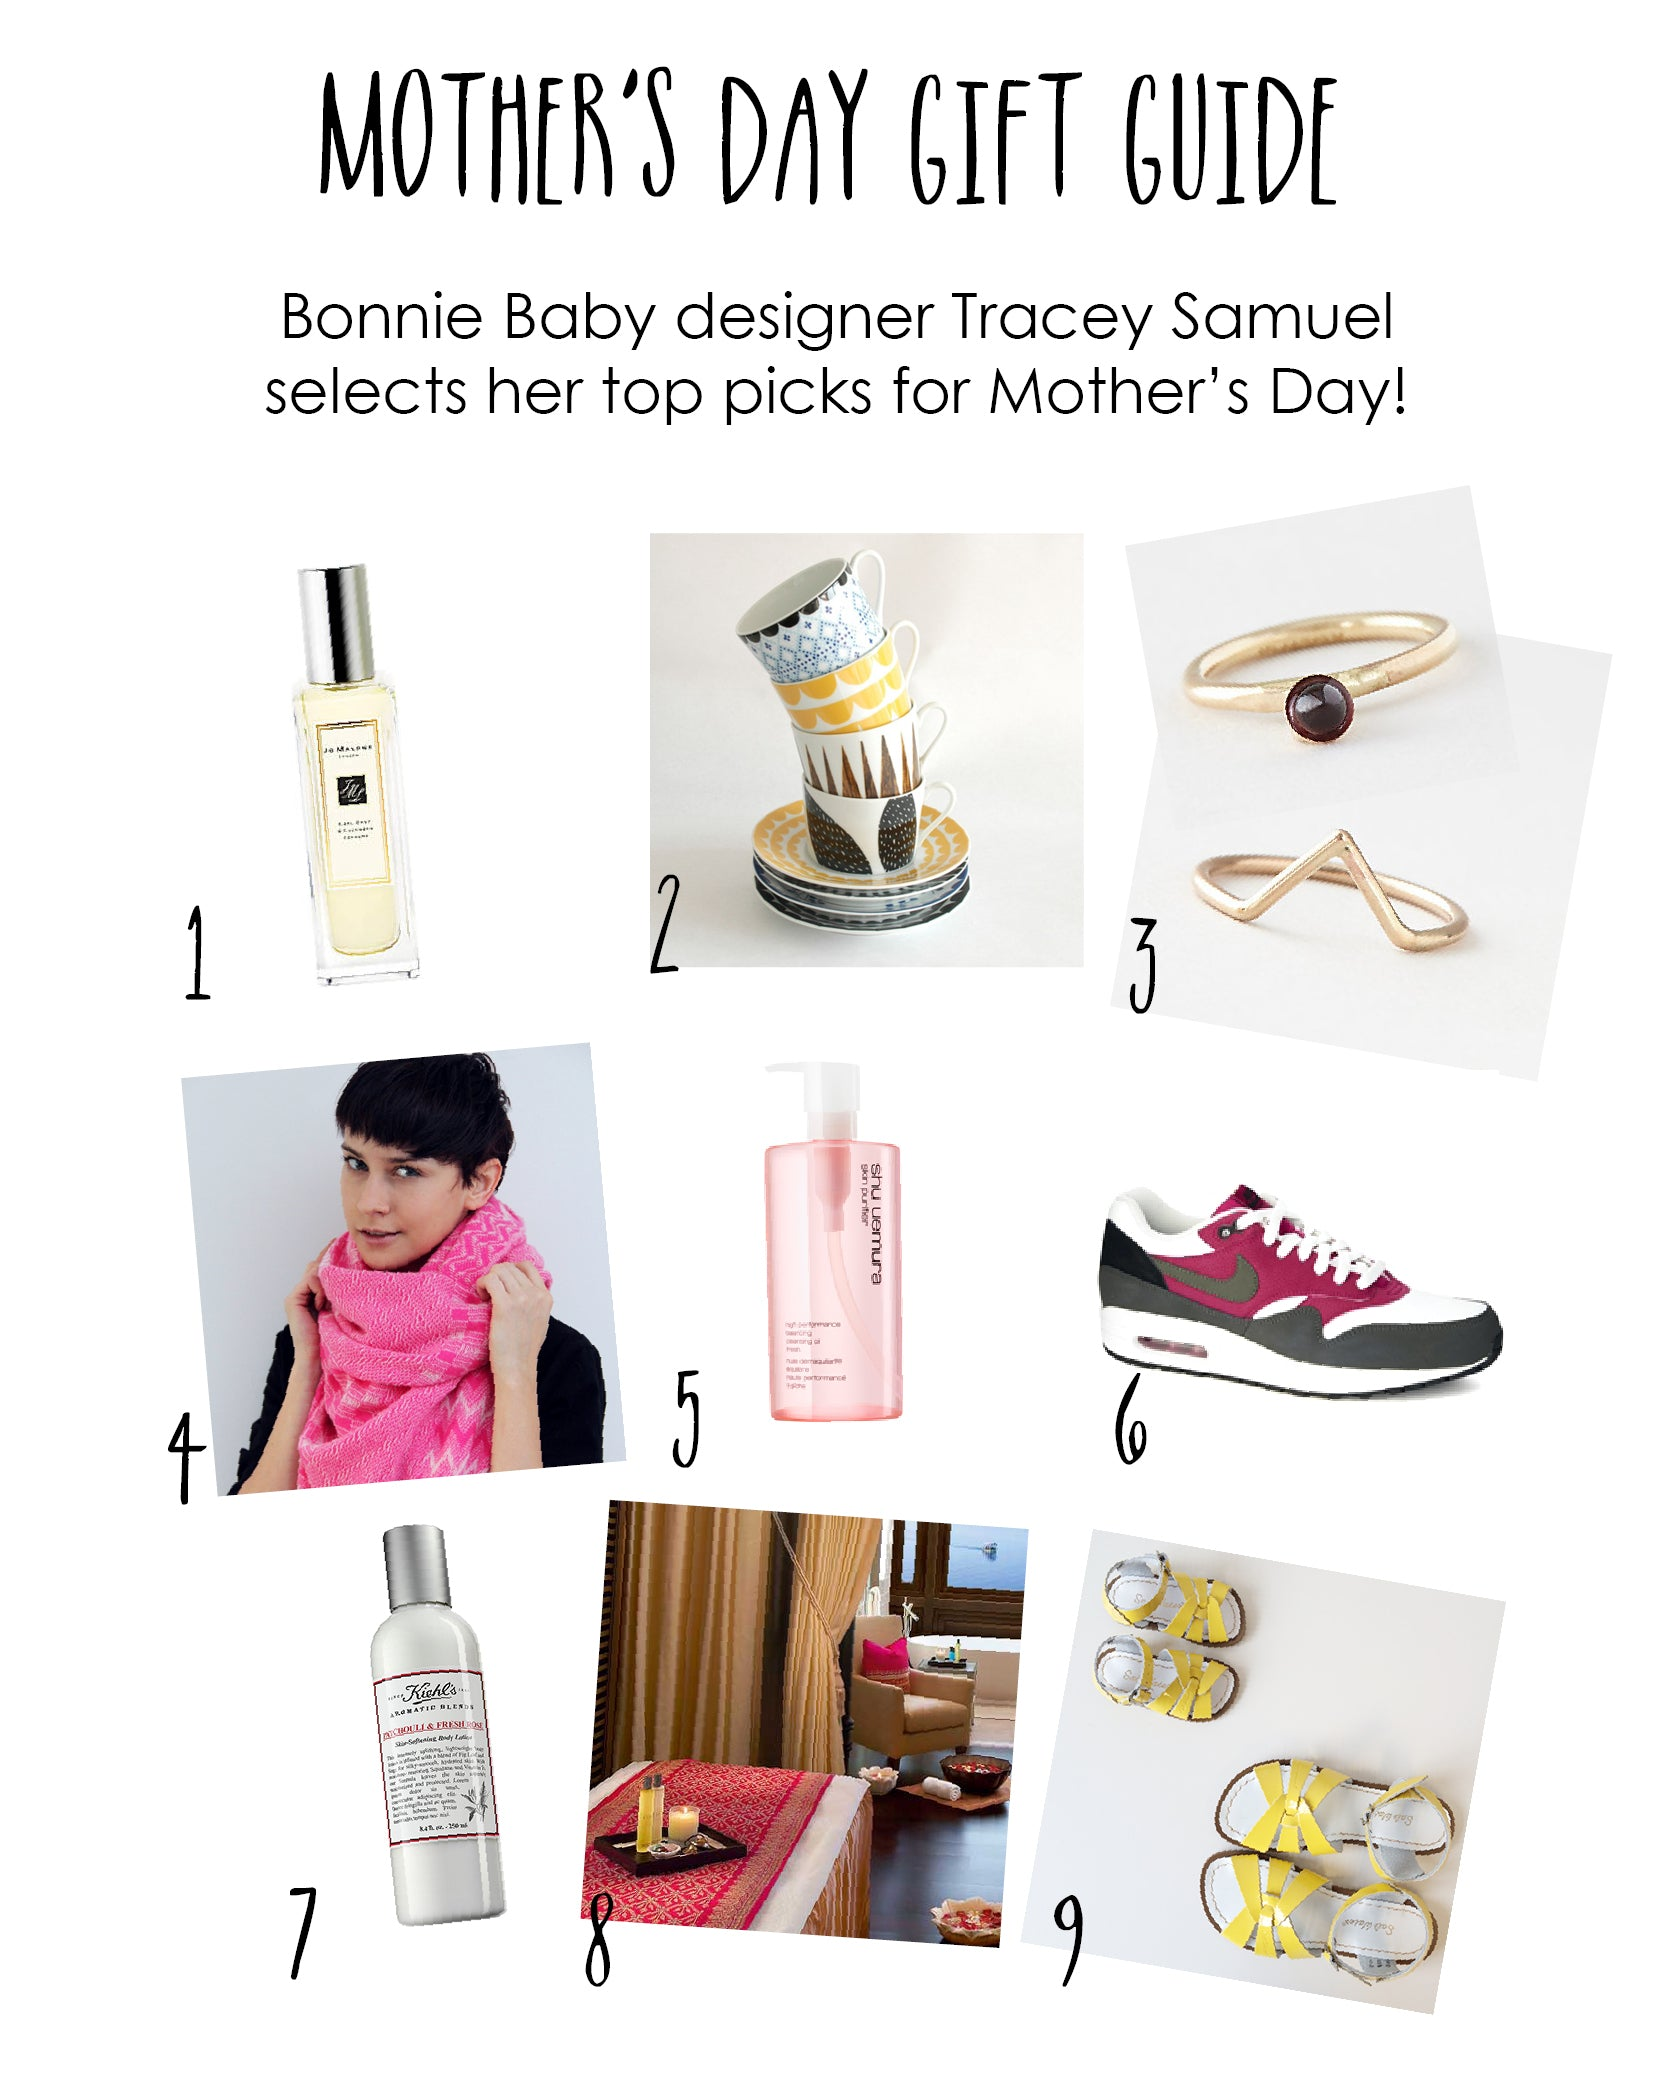 MOTHERS DAY GIFT GUIDE FROM DESIGNER TRACEY SAMUEL